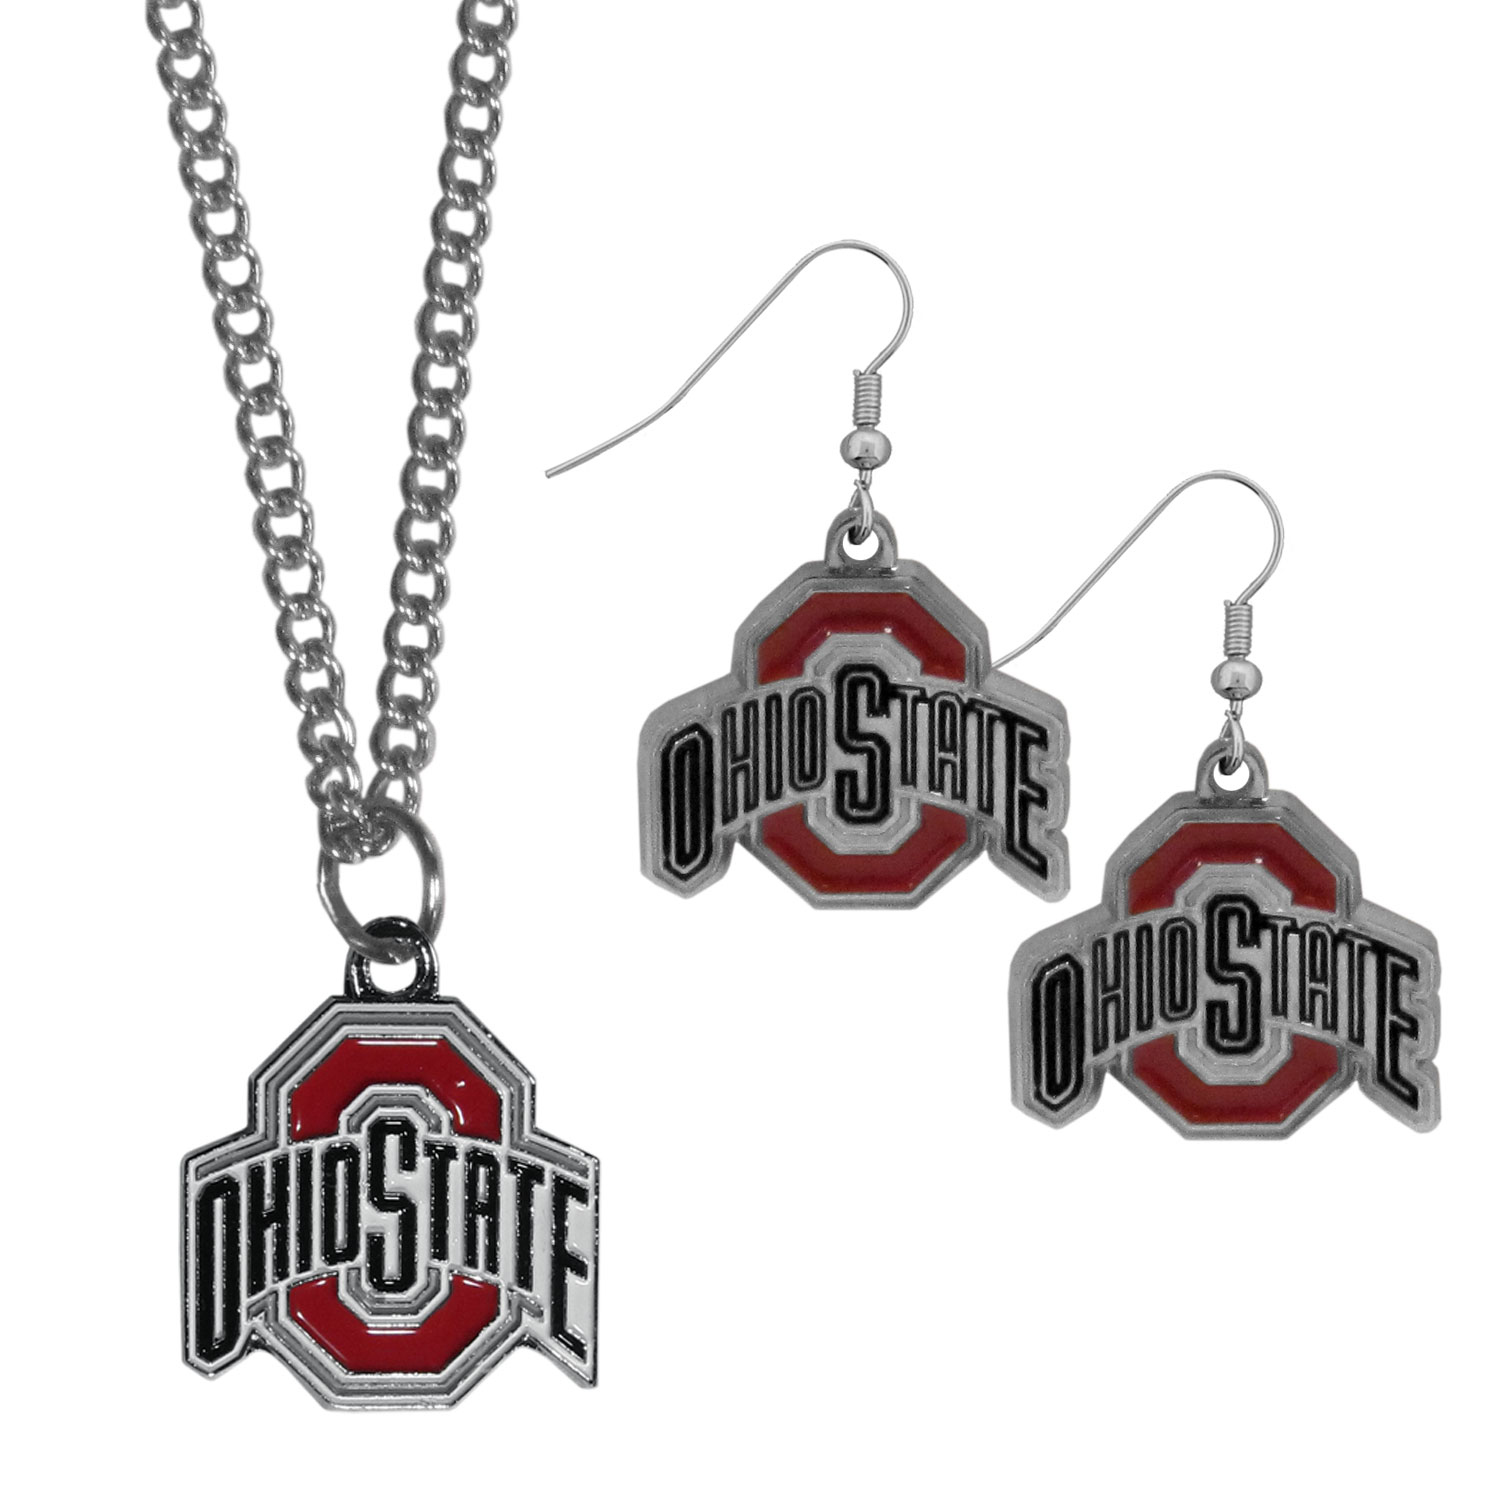 Ohio St. Buckeyes Dangle Earrings and Chain Necklace Set - This classic jewelry set contains are most popular Ohio St. Buckeyes dangle earrings and 22 inch chain necklace. The trendy, dangle earrings are lightweight and feature a fully cast metal team charm with enameled team colors. The matching necklace completes this fashion forward combo and is a spirited set that is perfect for game day but nice enough for everyday.